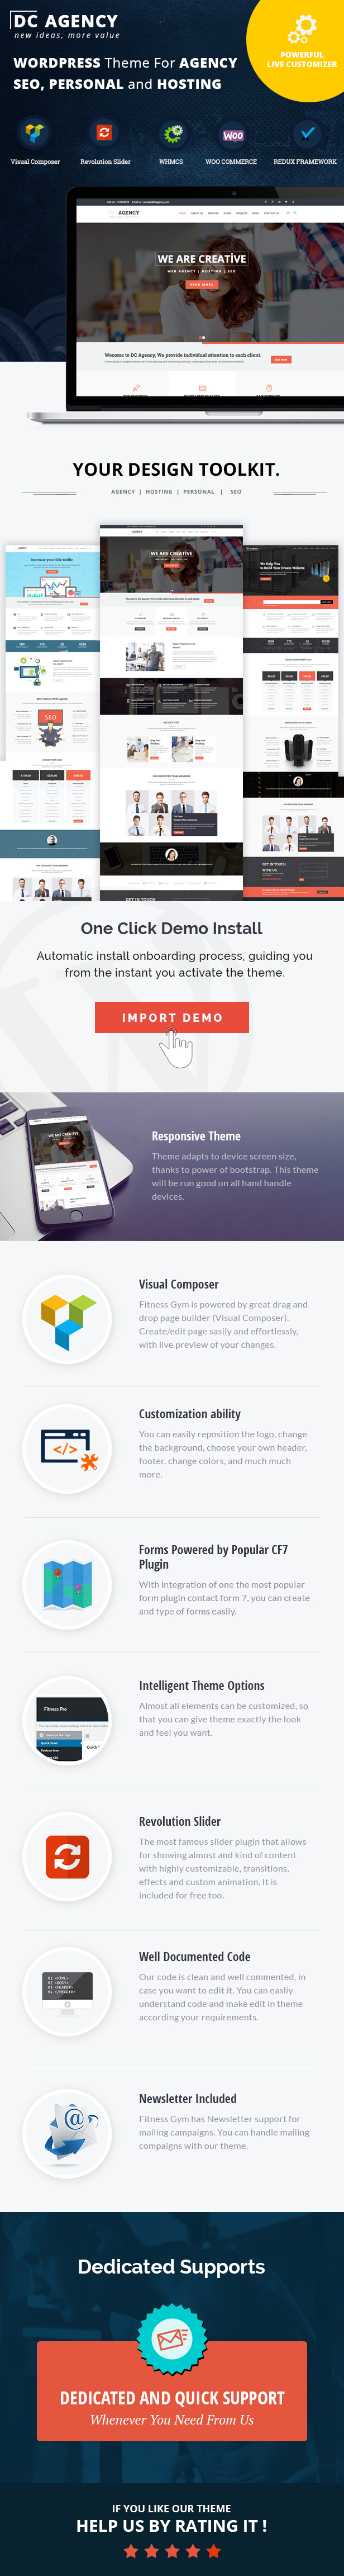 Agency Theme For Creative Agency, Hosting, SEO, Portfolio, Hosting Services, SEO and  Consultancy